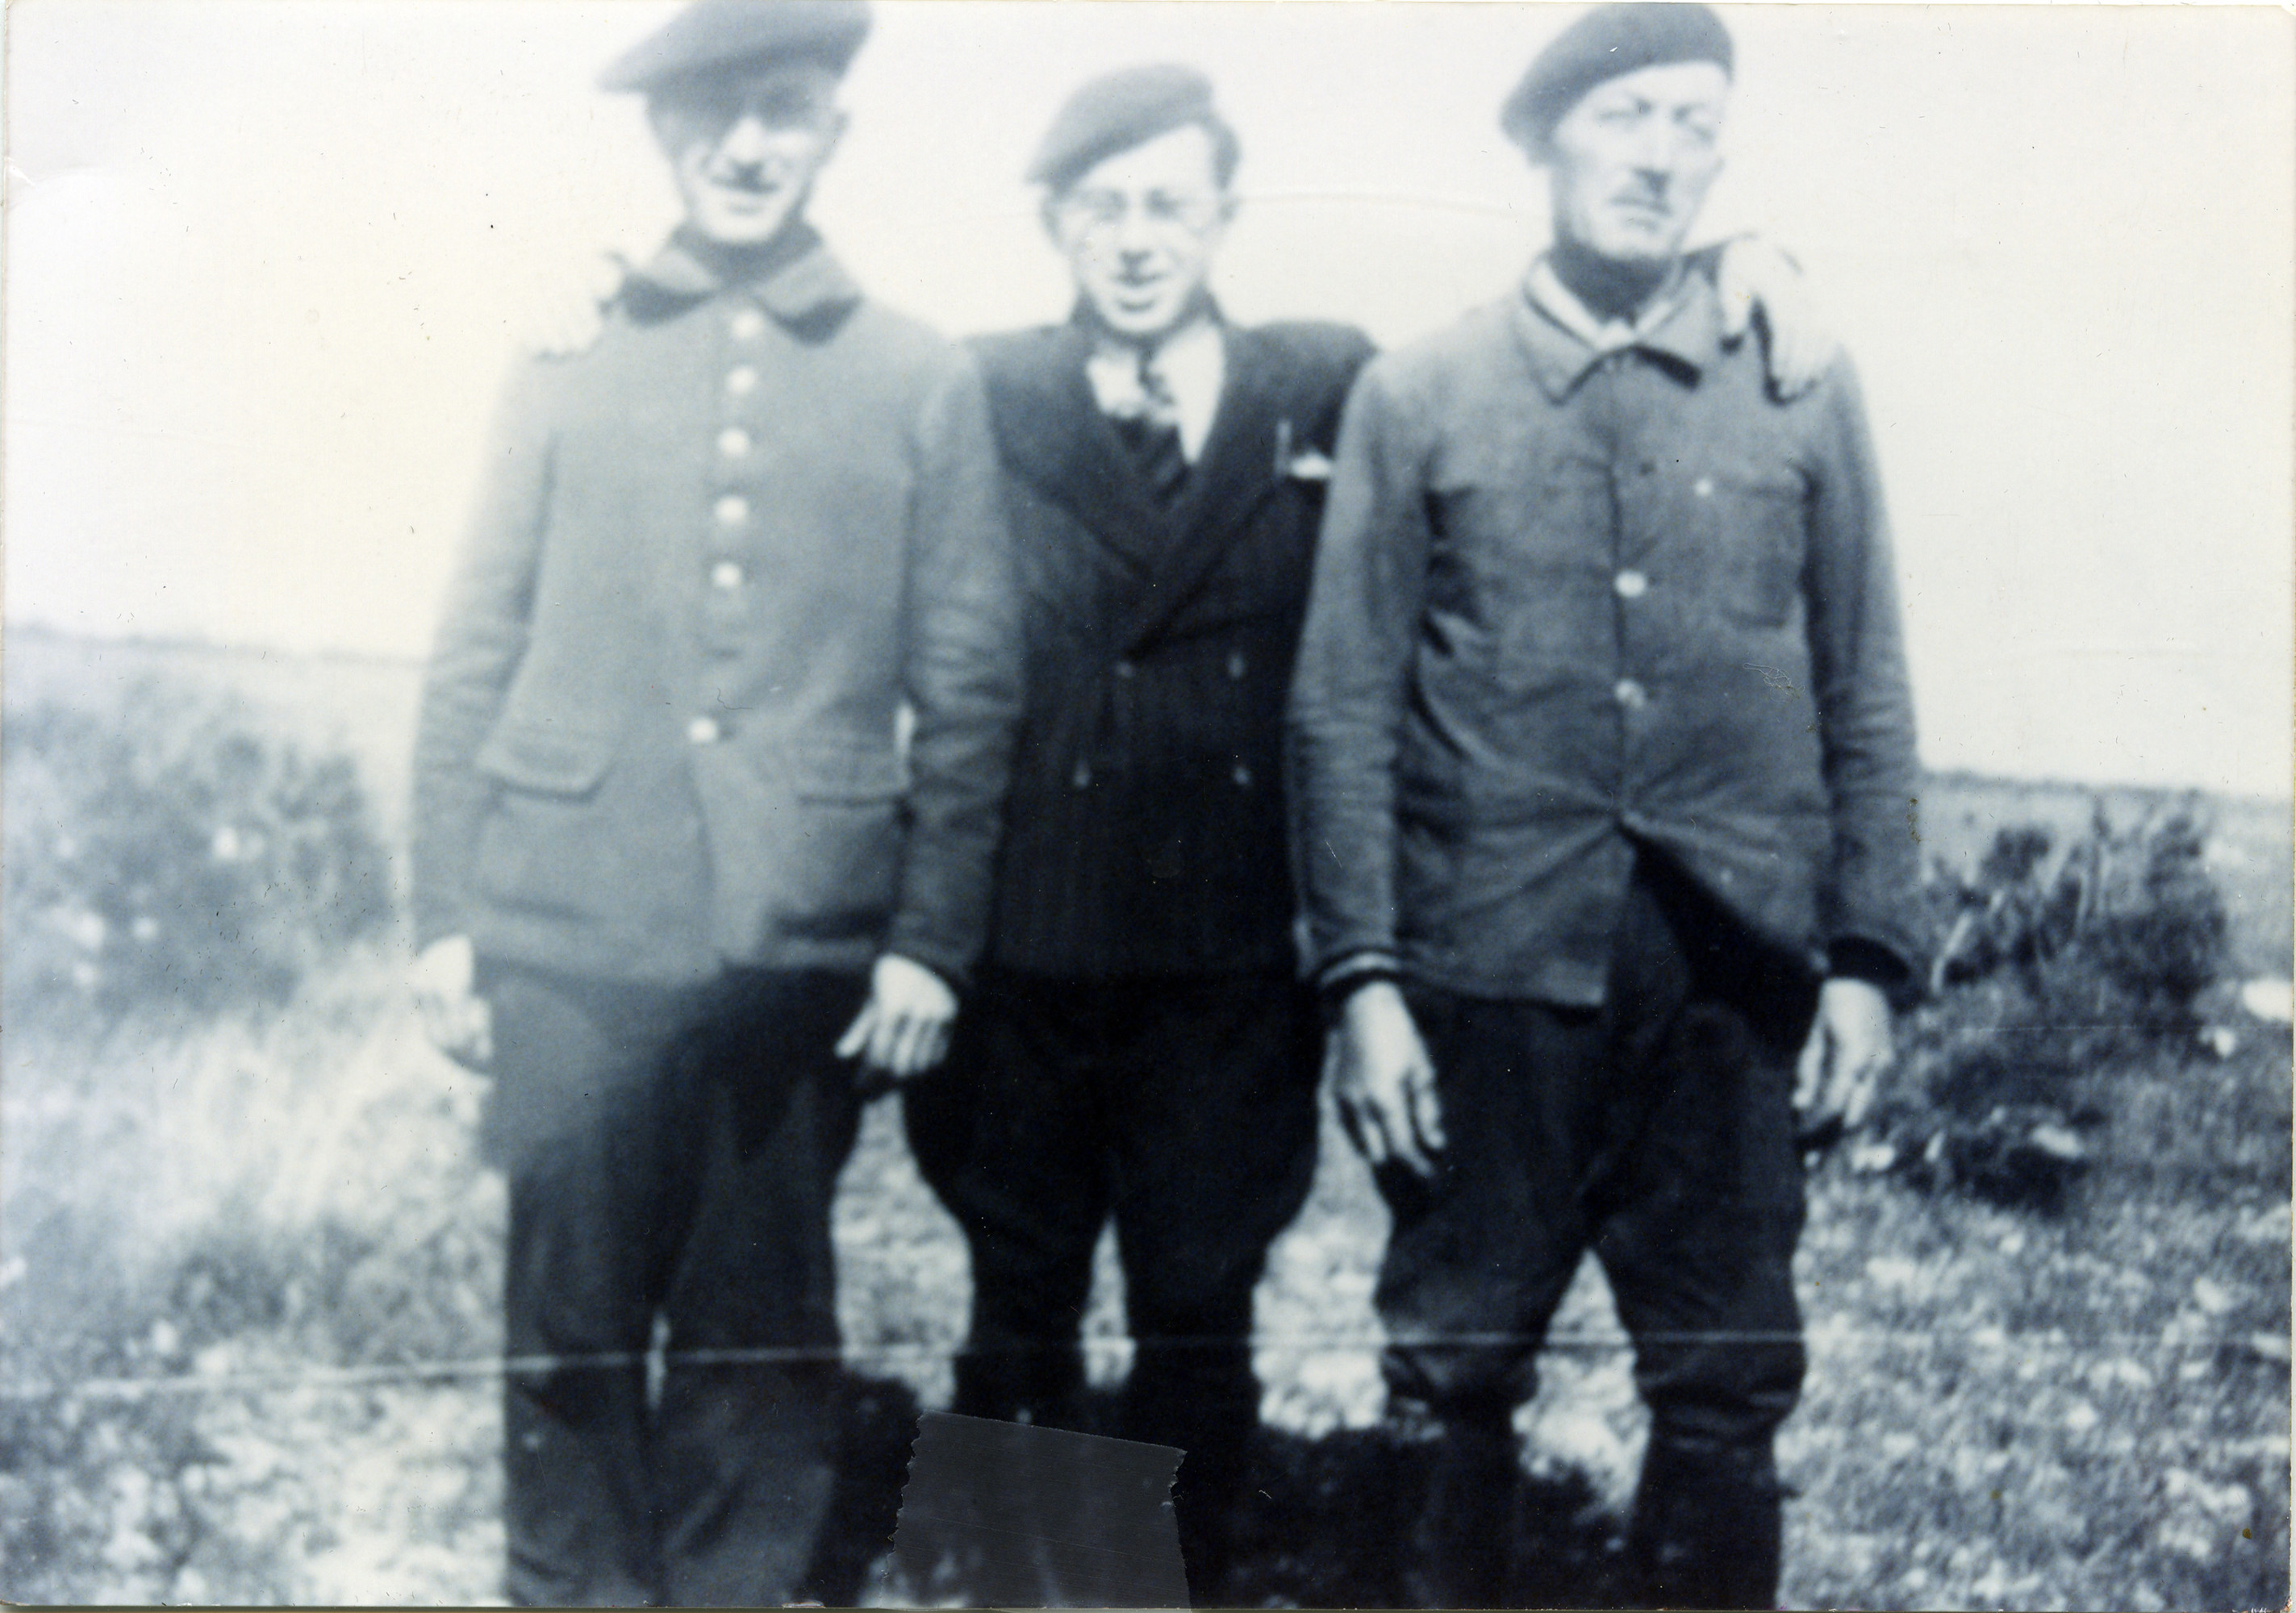 Three Jewish men in the Rivesaltes transit camp.    Pictured on the right is Leopold Judas, with his brother Leo (left) and nephew Erich.  Erich would later be instrumental in helping members of his family escape from Rivesaltes.  All three men were later deported to Auschwitz.